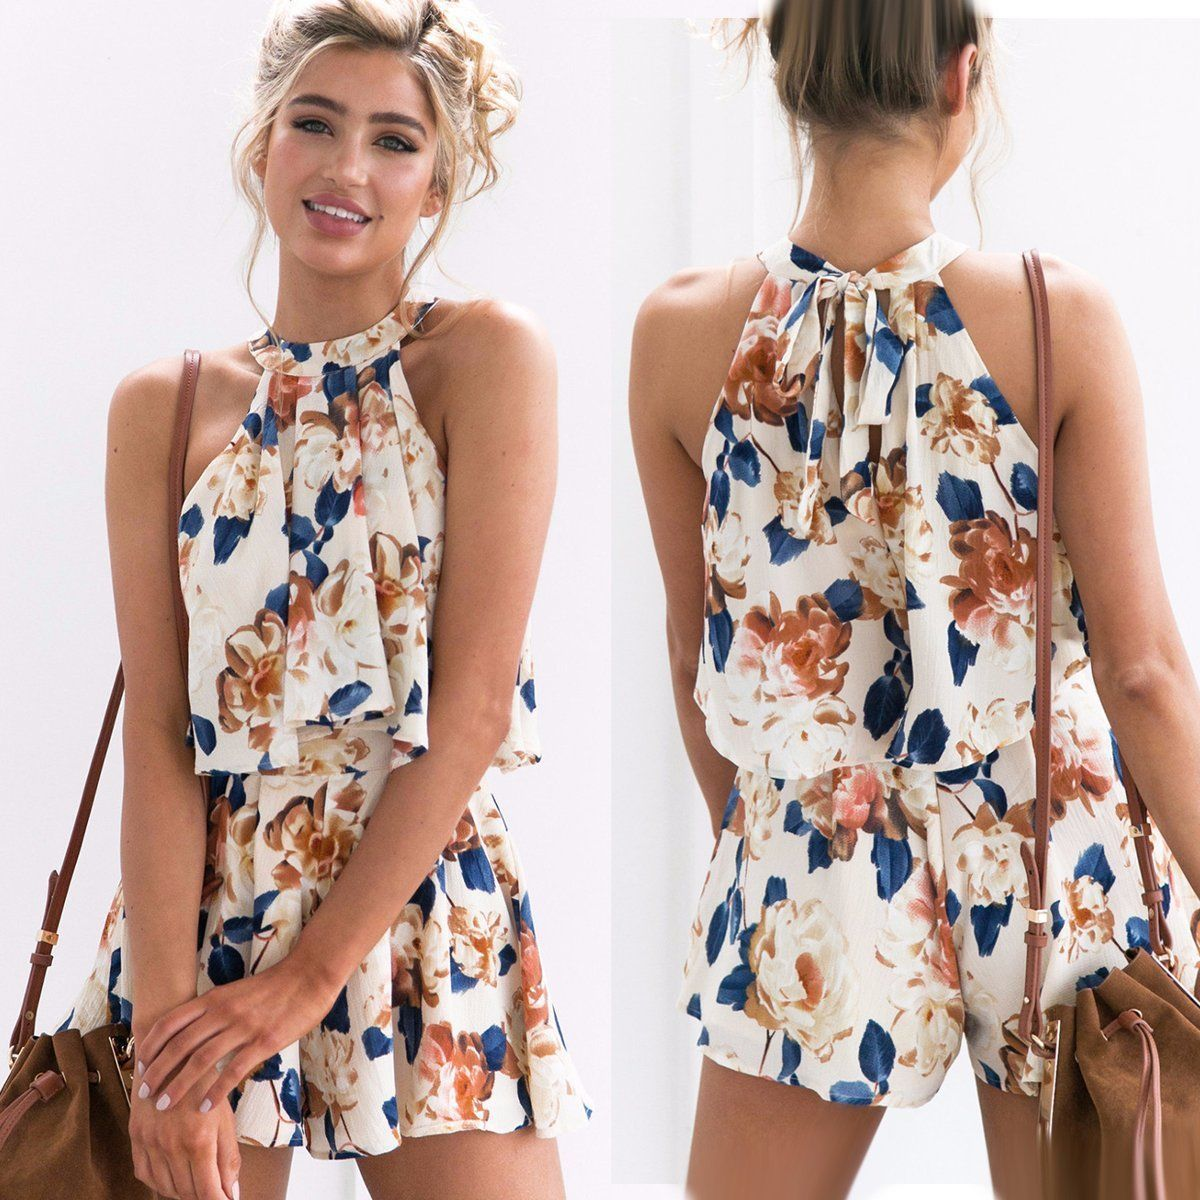 b2c35929387 Summer Womens Party Club Playsuit Rompers Beach Sun Dress Casual Jumpsuit  Shorts